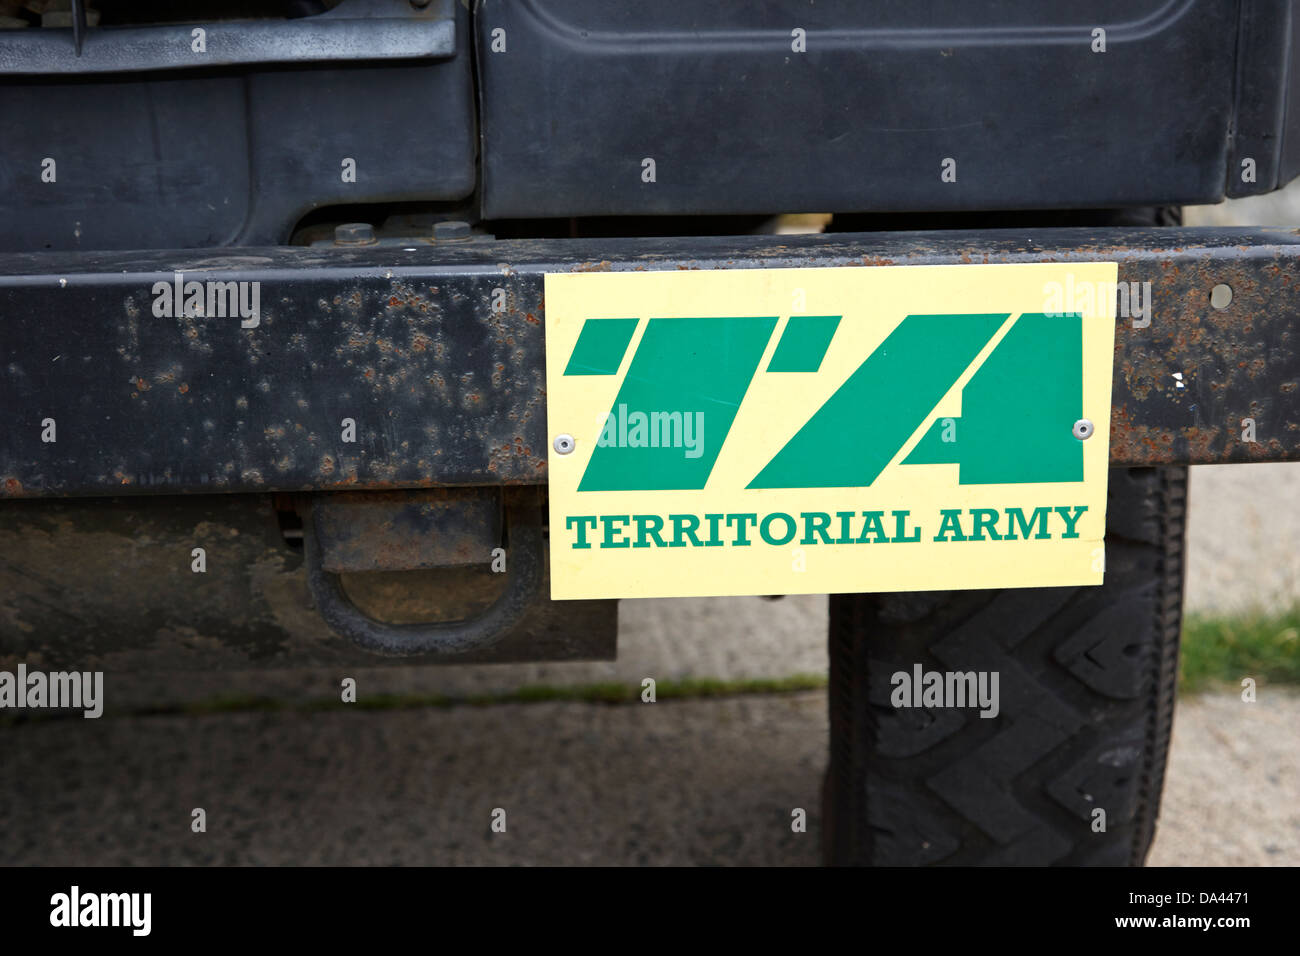 Territorial Army Stock Photos Territorial Army Stock Images Alamy